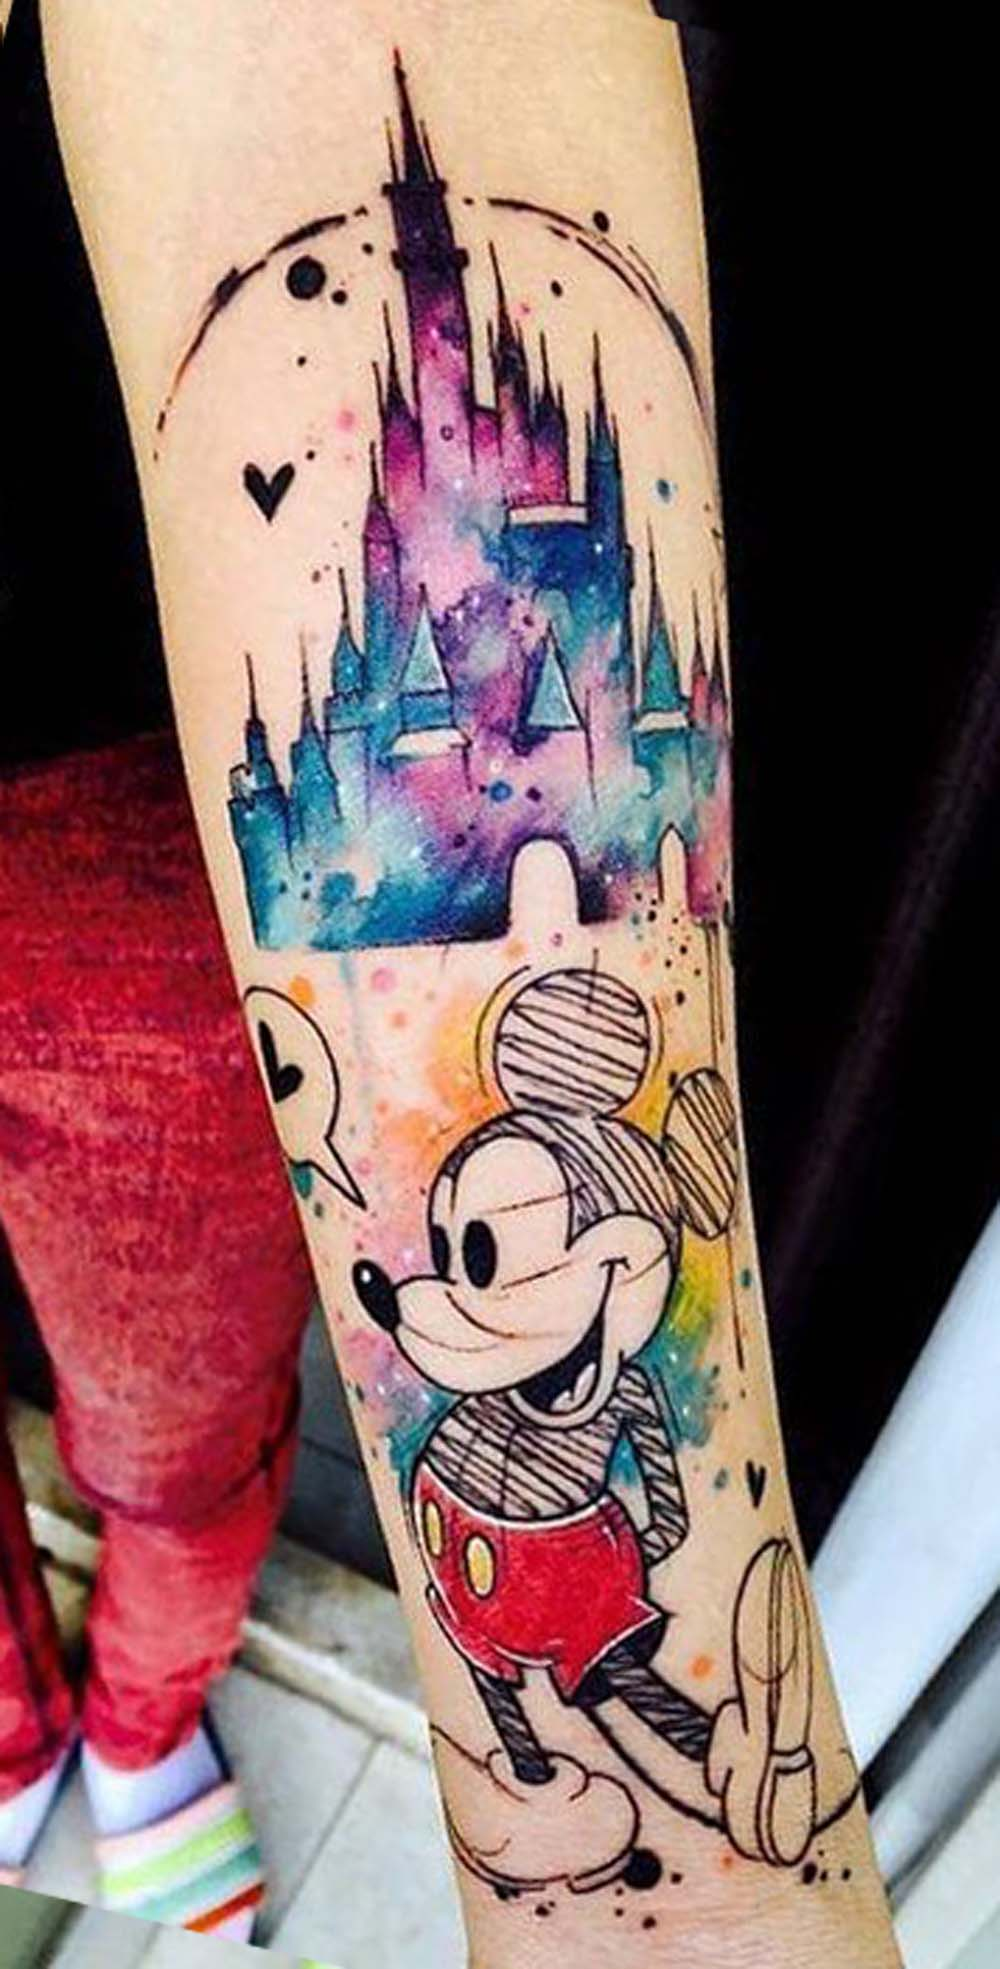 Watercolor Sketch Mickey Mouse Disney Castle Forearm Tattoo Ideas for Women - www.MyBodiArt.com